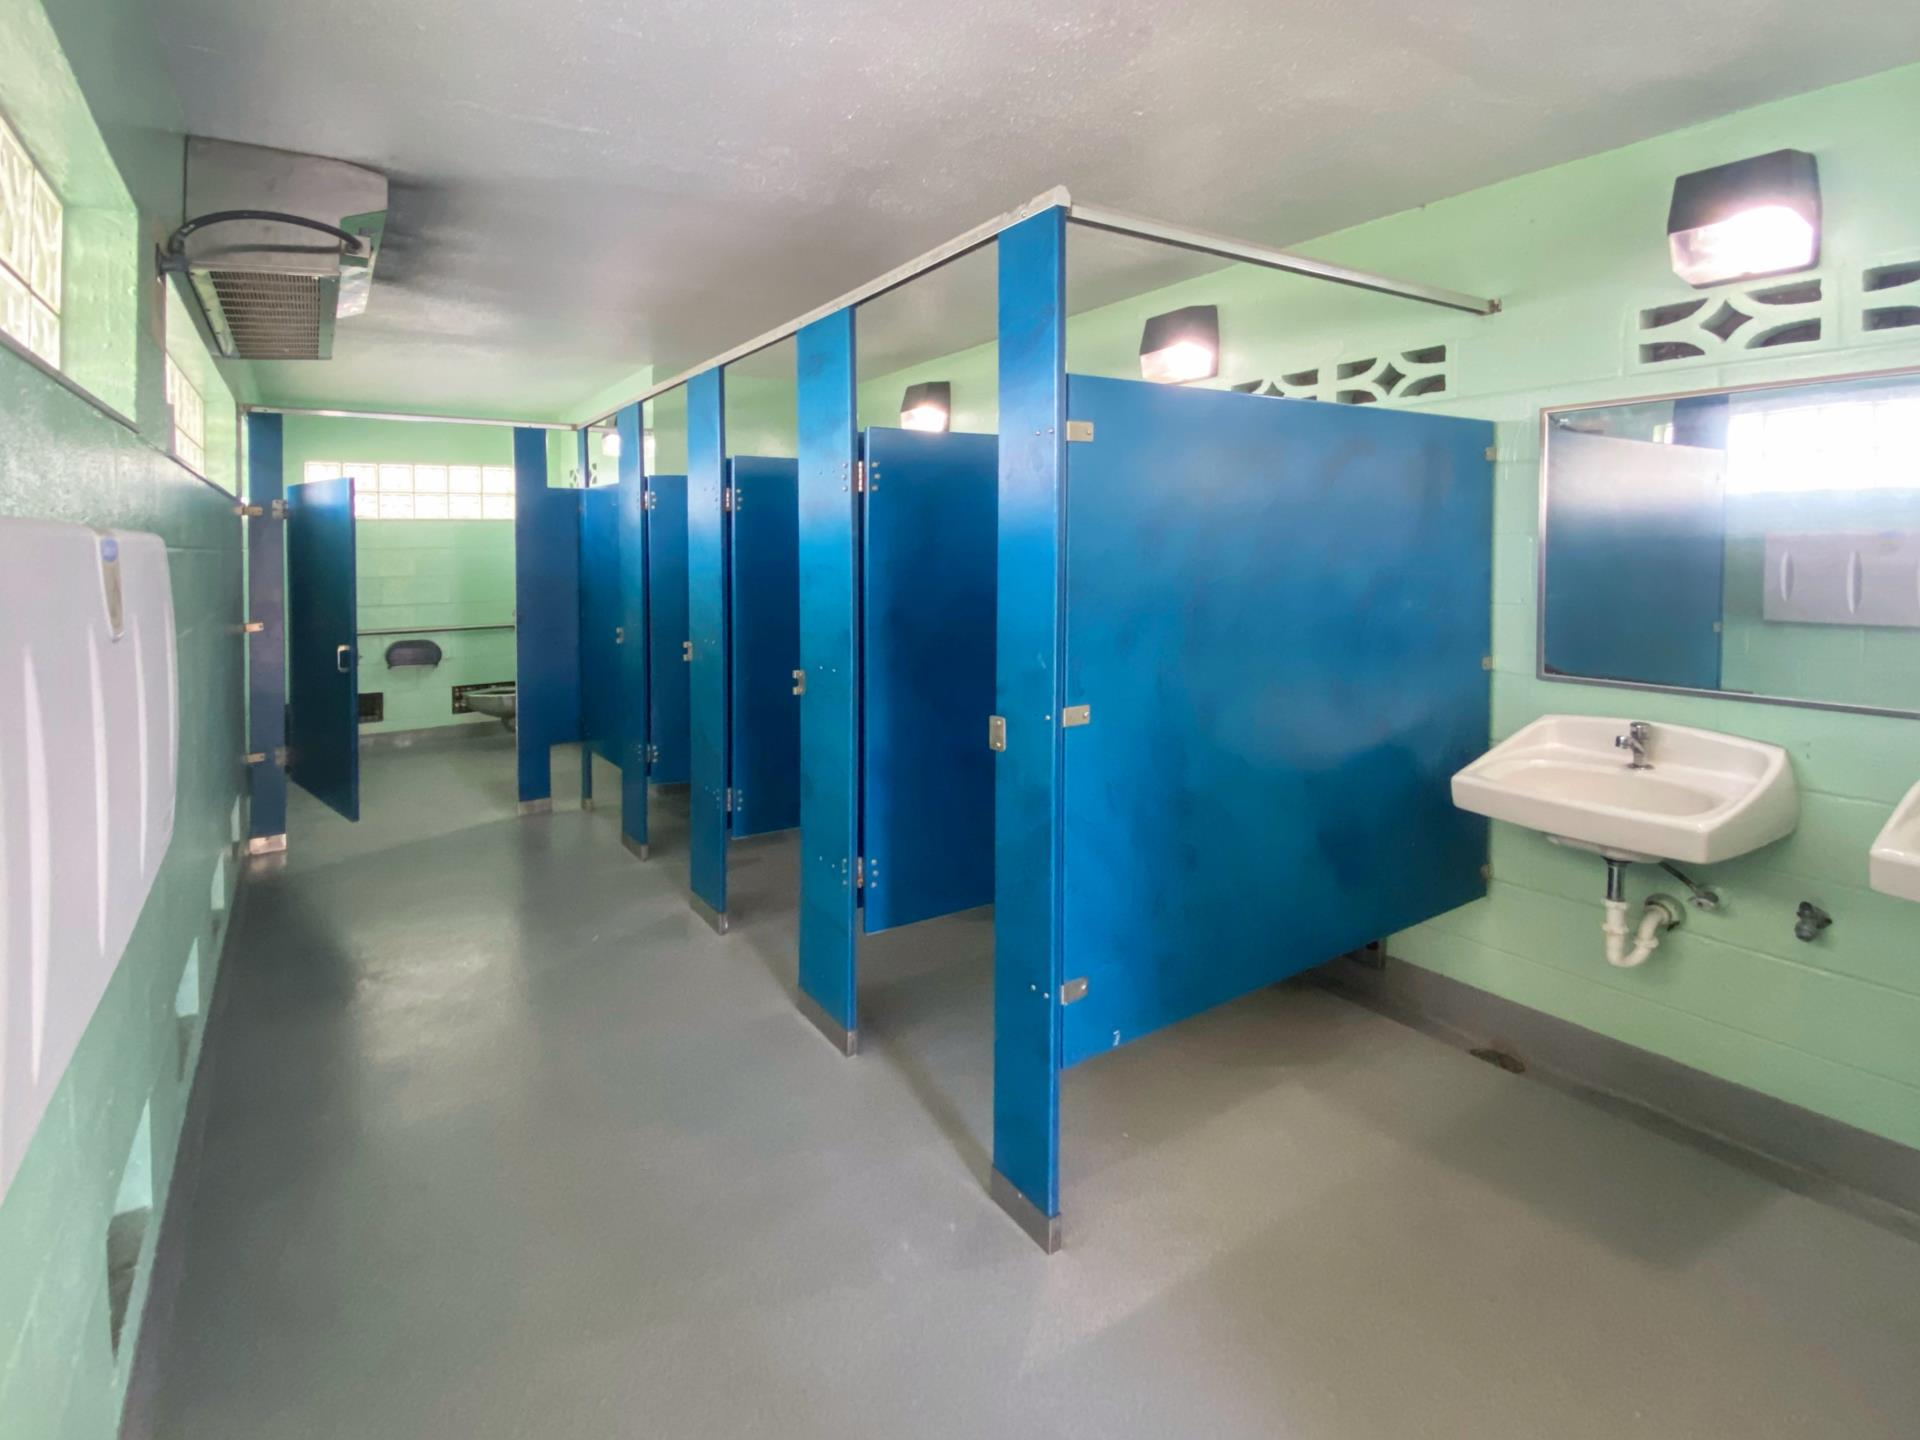 Blue partitions with bathroom stalls and sinks